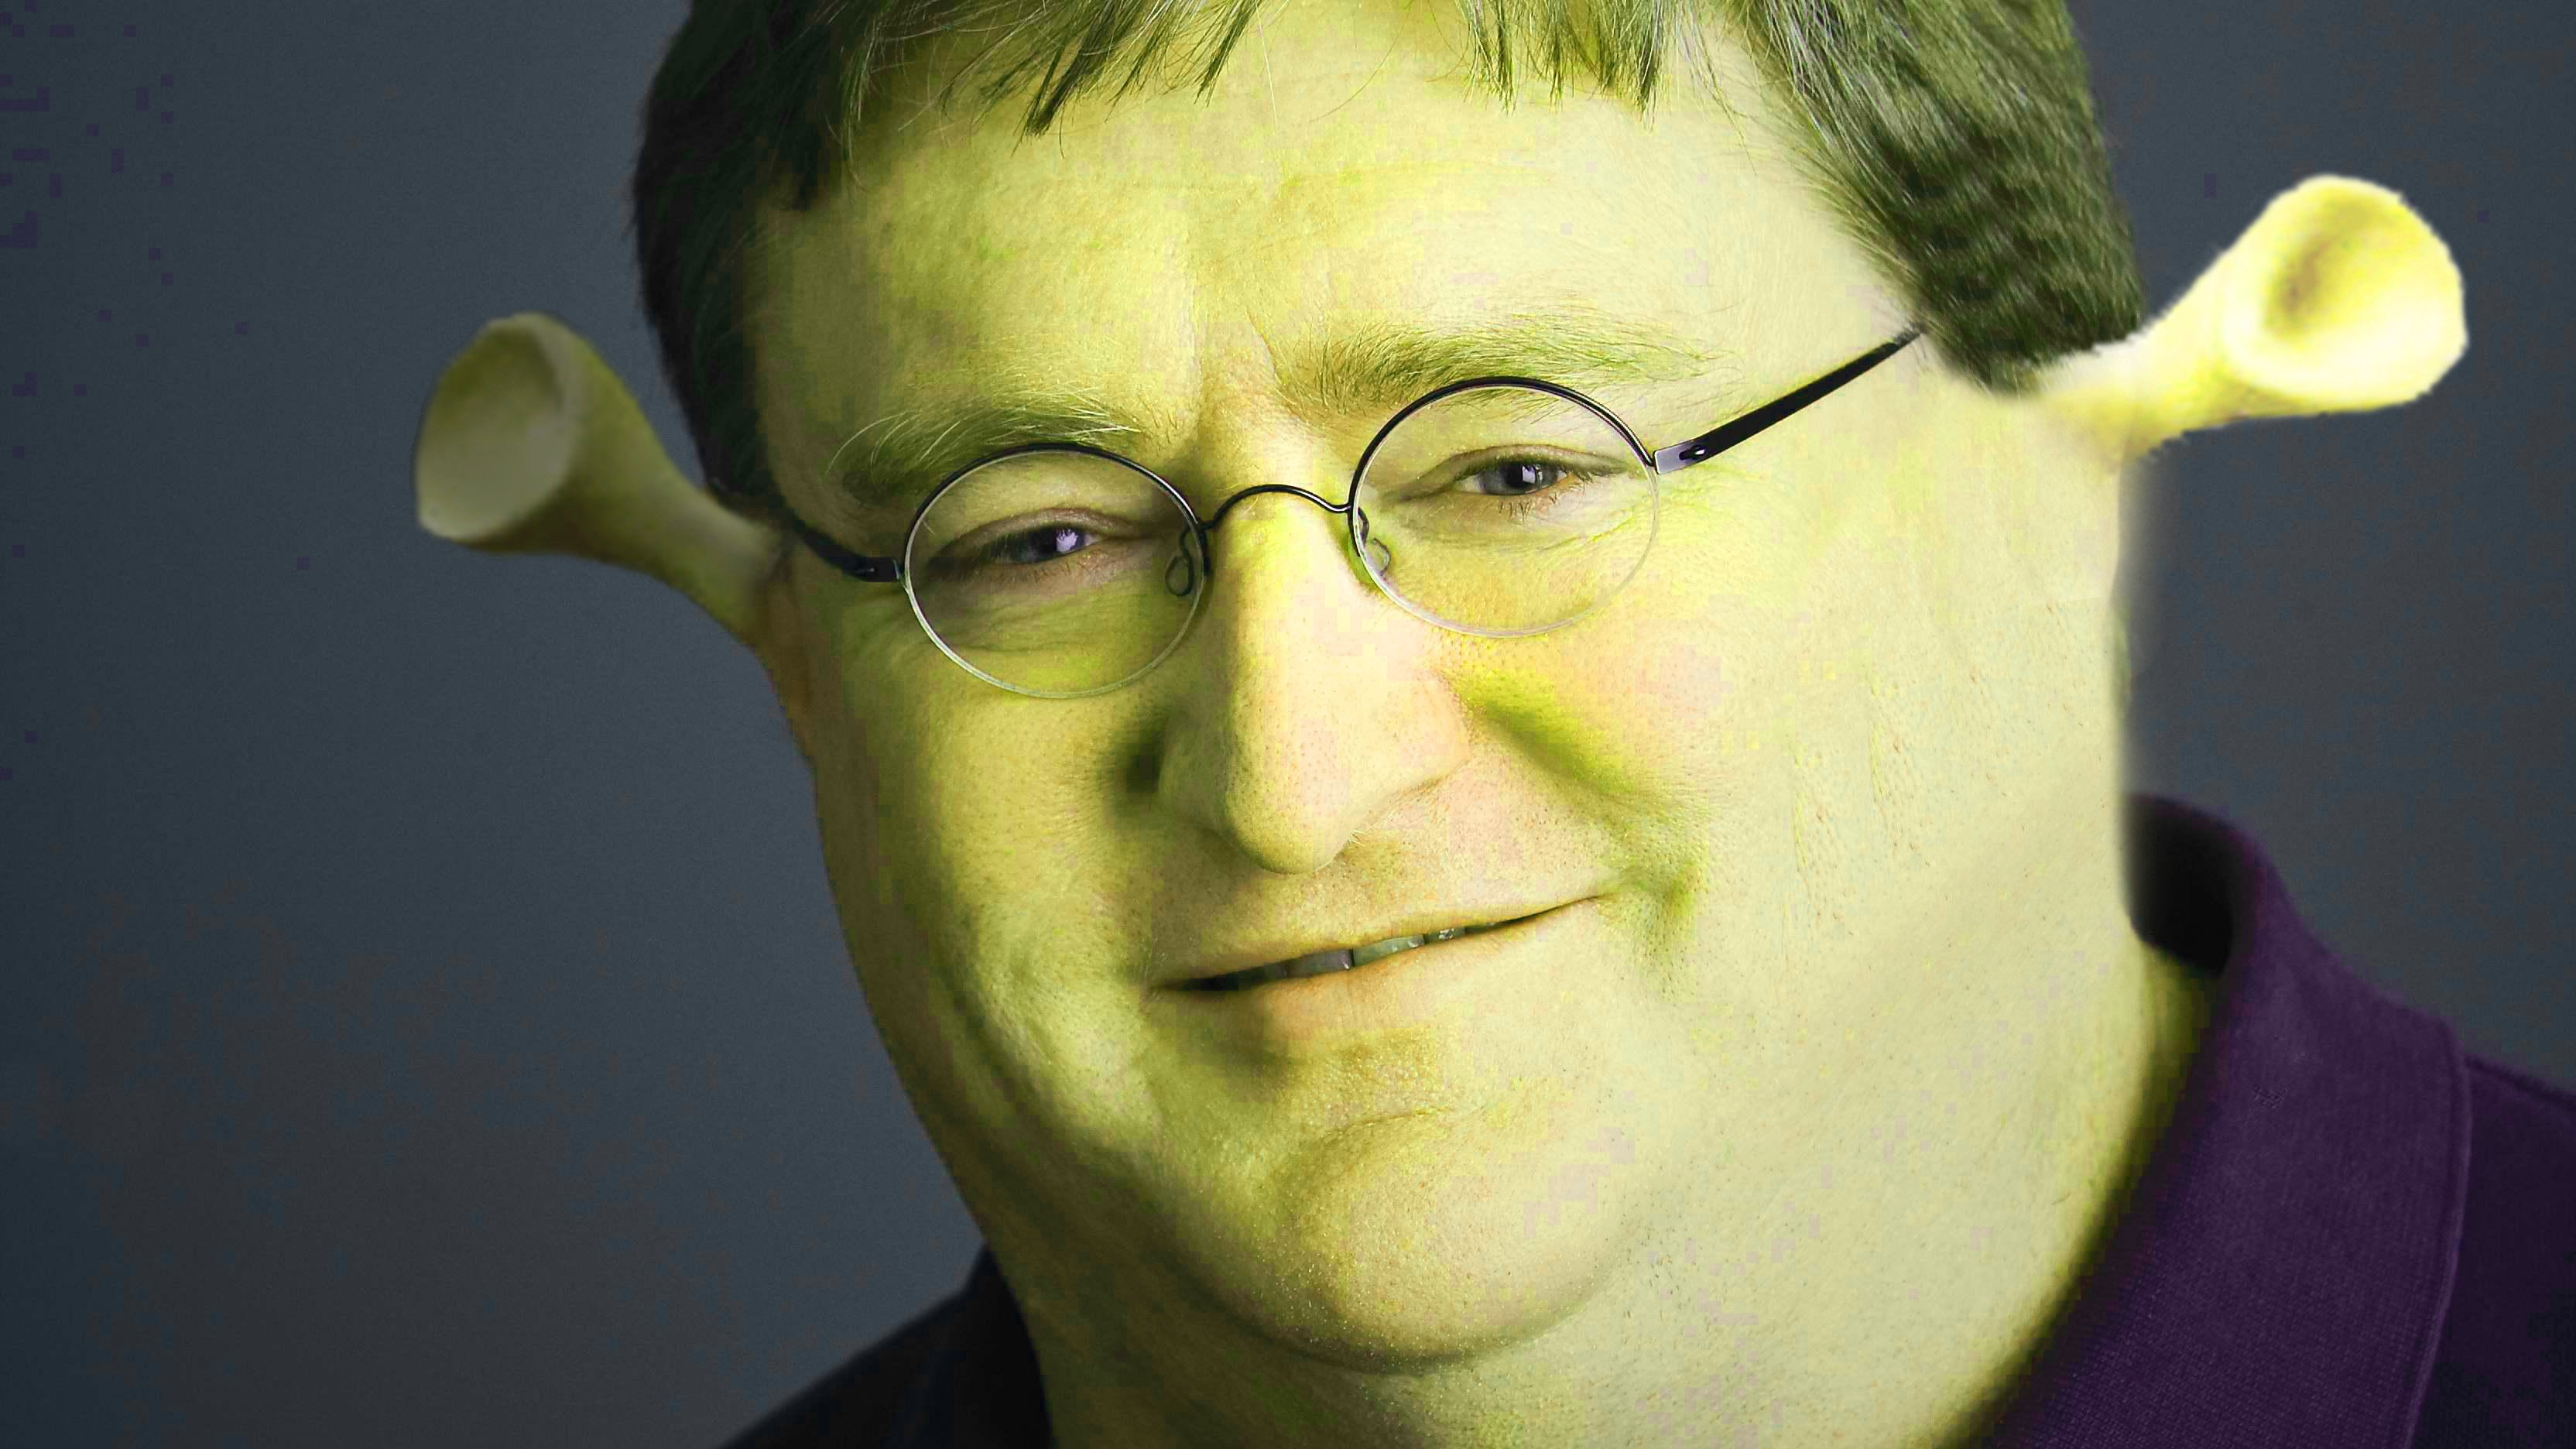 TIL Gaben is related to Shrek and Dank Memes iimgurcom 3328x1872